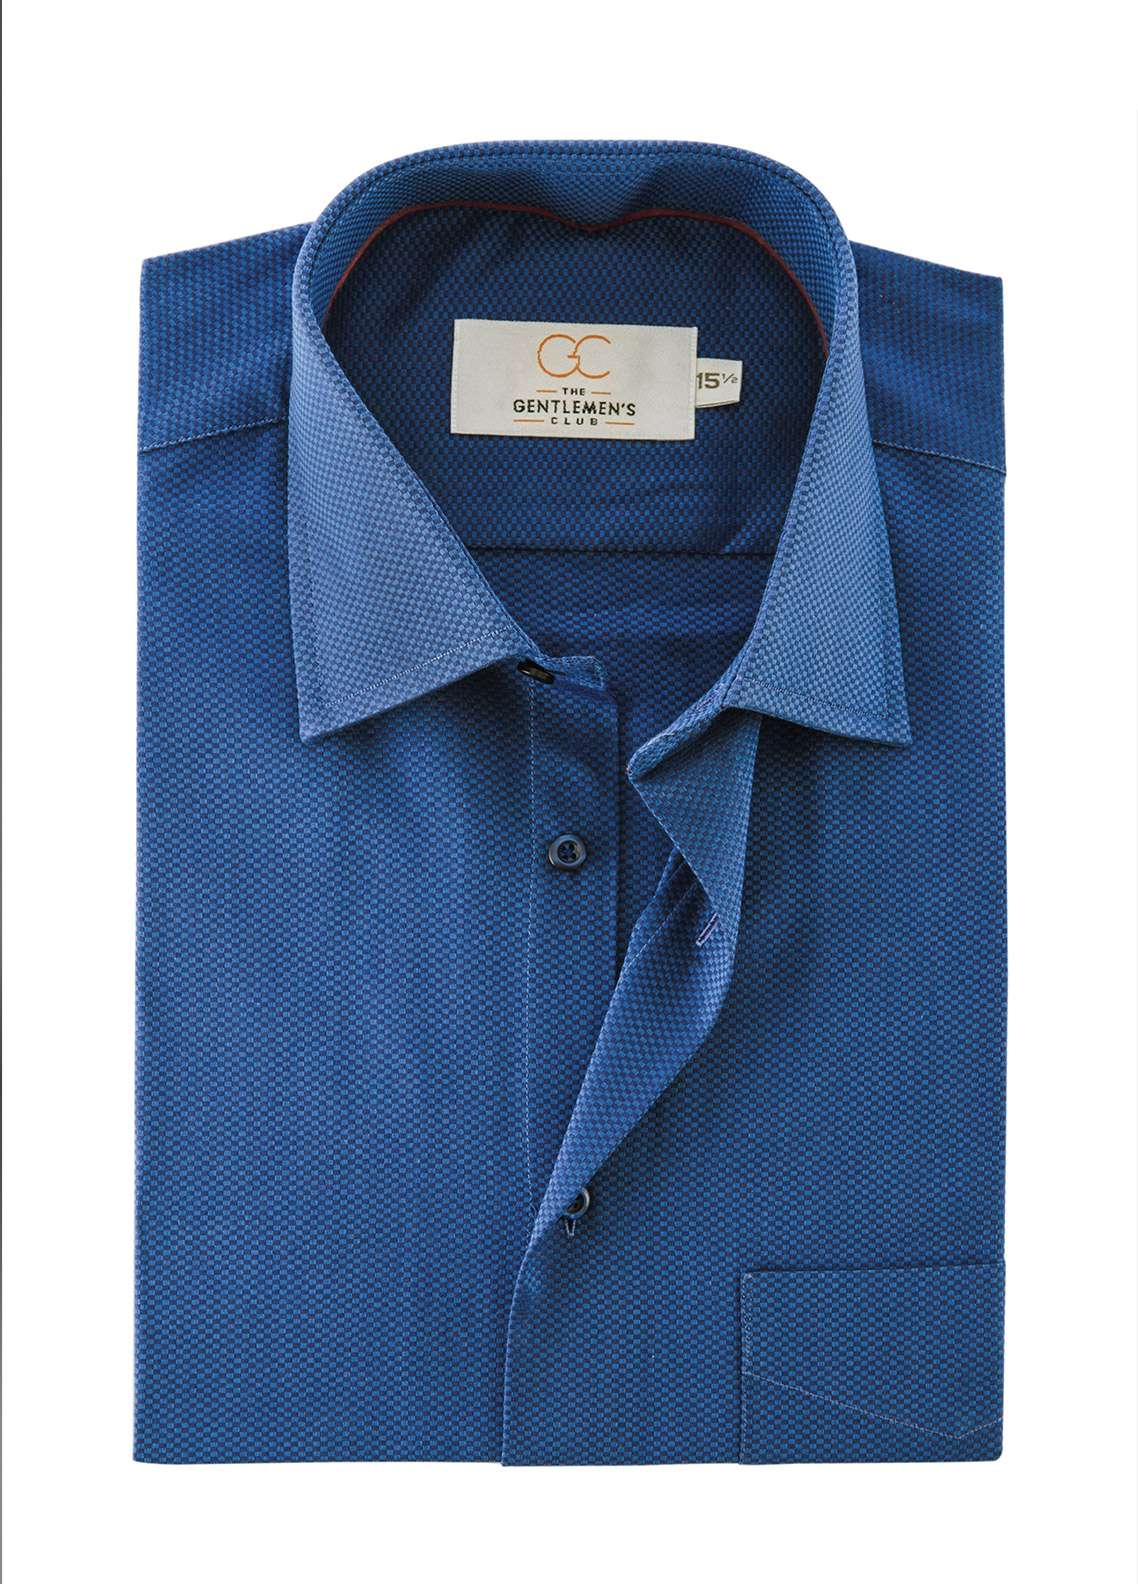 The Gentlemen's Club Cotton White Label Formal Shirts for Men - Royal Blue GM18FS 4011